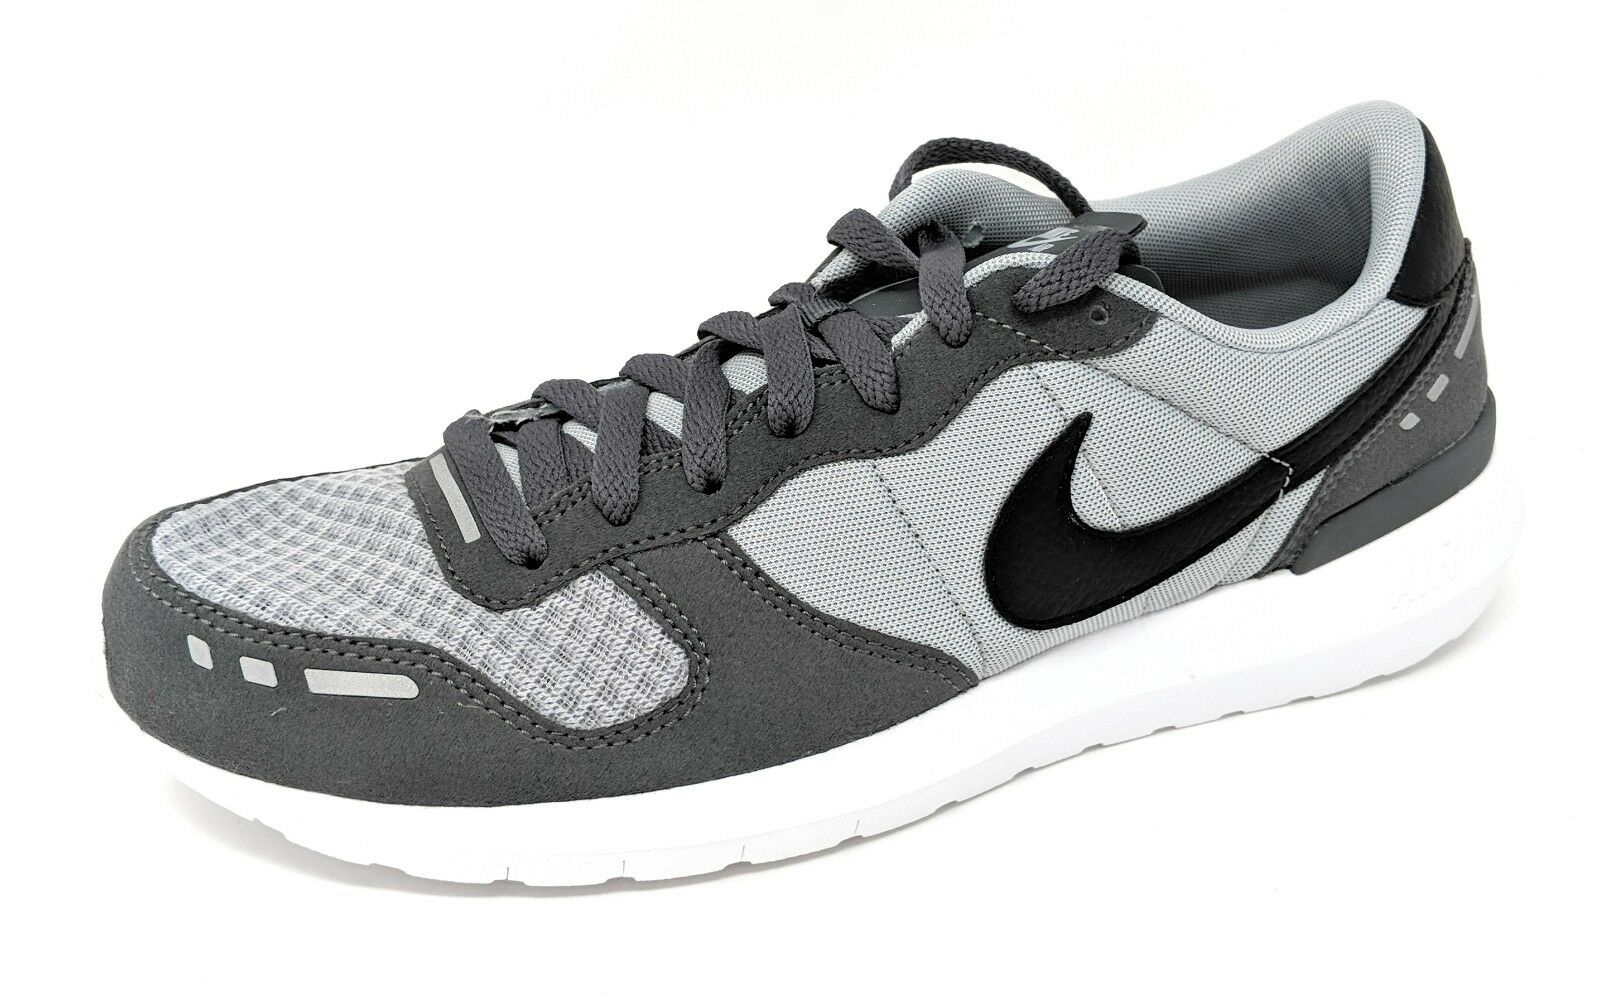 NIKE Men's Air Vrtx '17 Running Sz. 9 Med  Wolf Grey/Black- Dk Grey Seasonal clearance sale New shoes for men and women, limited time discount